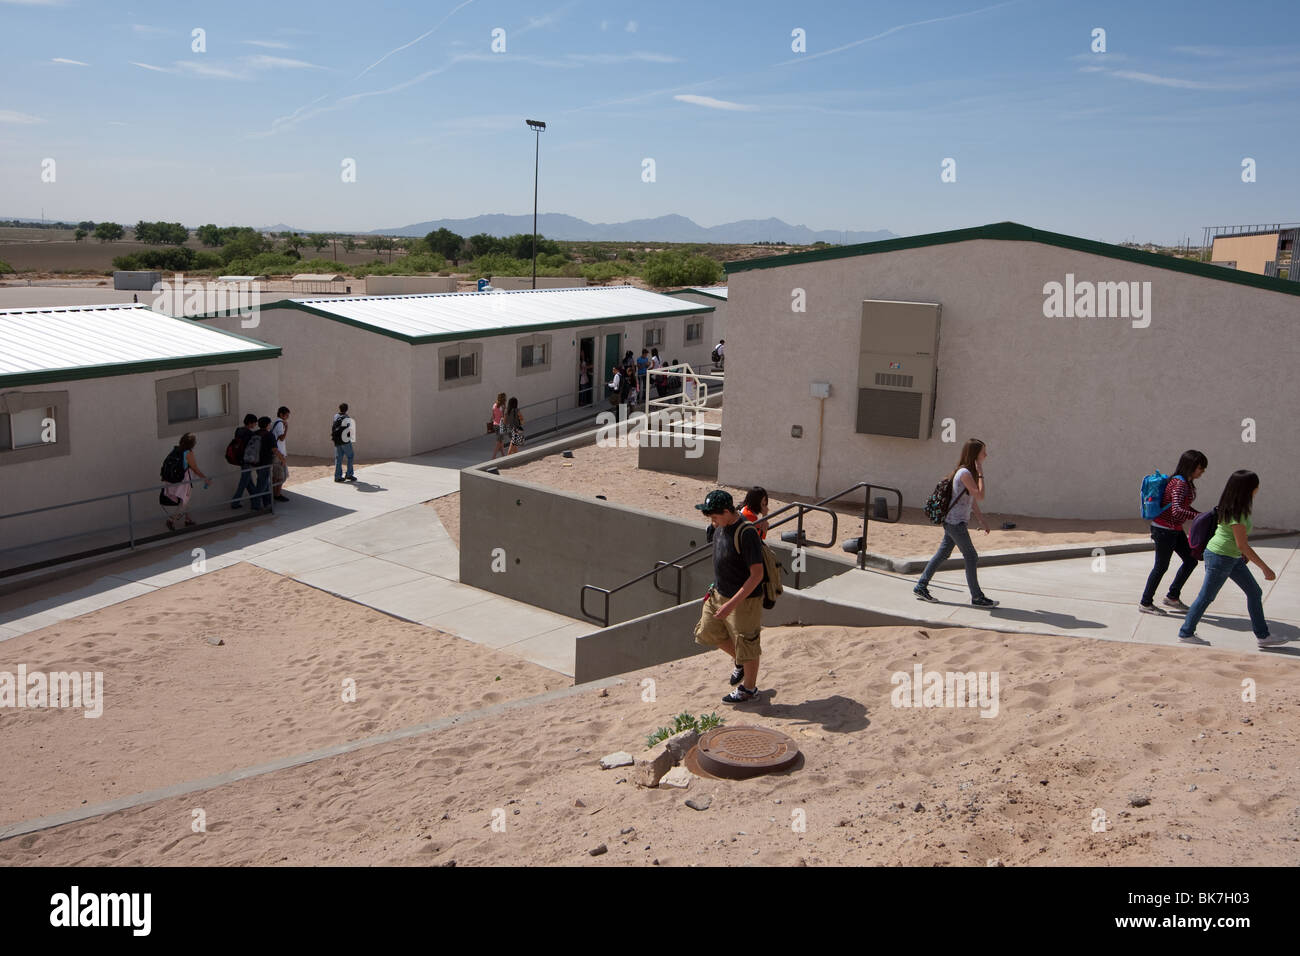 Exterior of portable buildings on campus of Mission Early College High School in El Paso, Texas - Stock Image